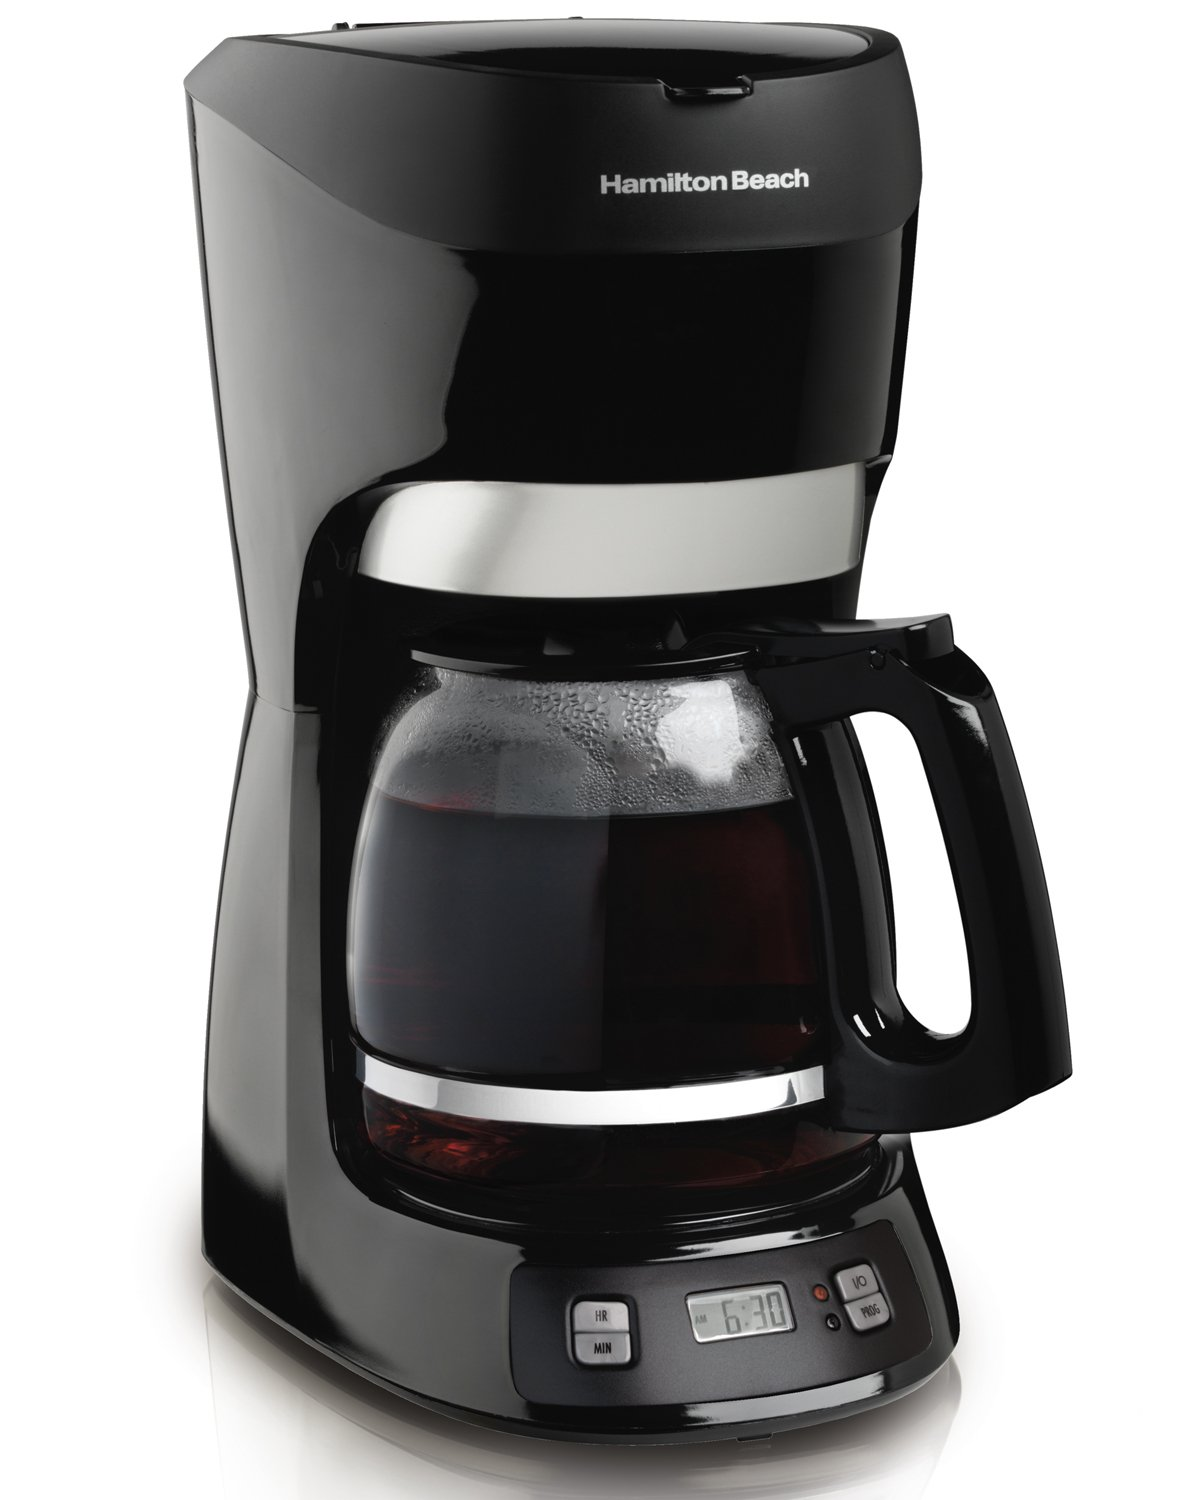 Hamilton Beach Coffee Maker 49467: The Sleek Device for 12 Cup Serving